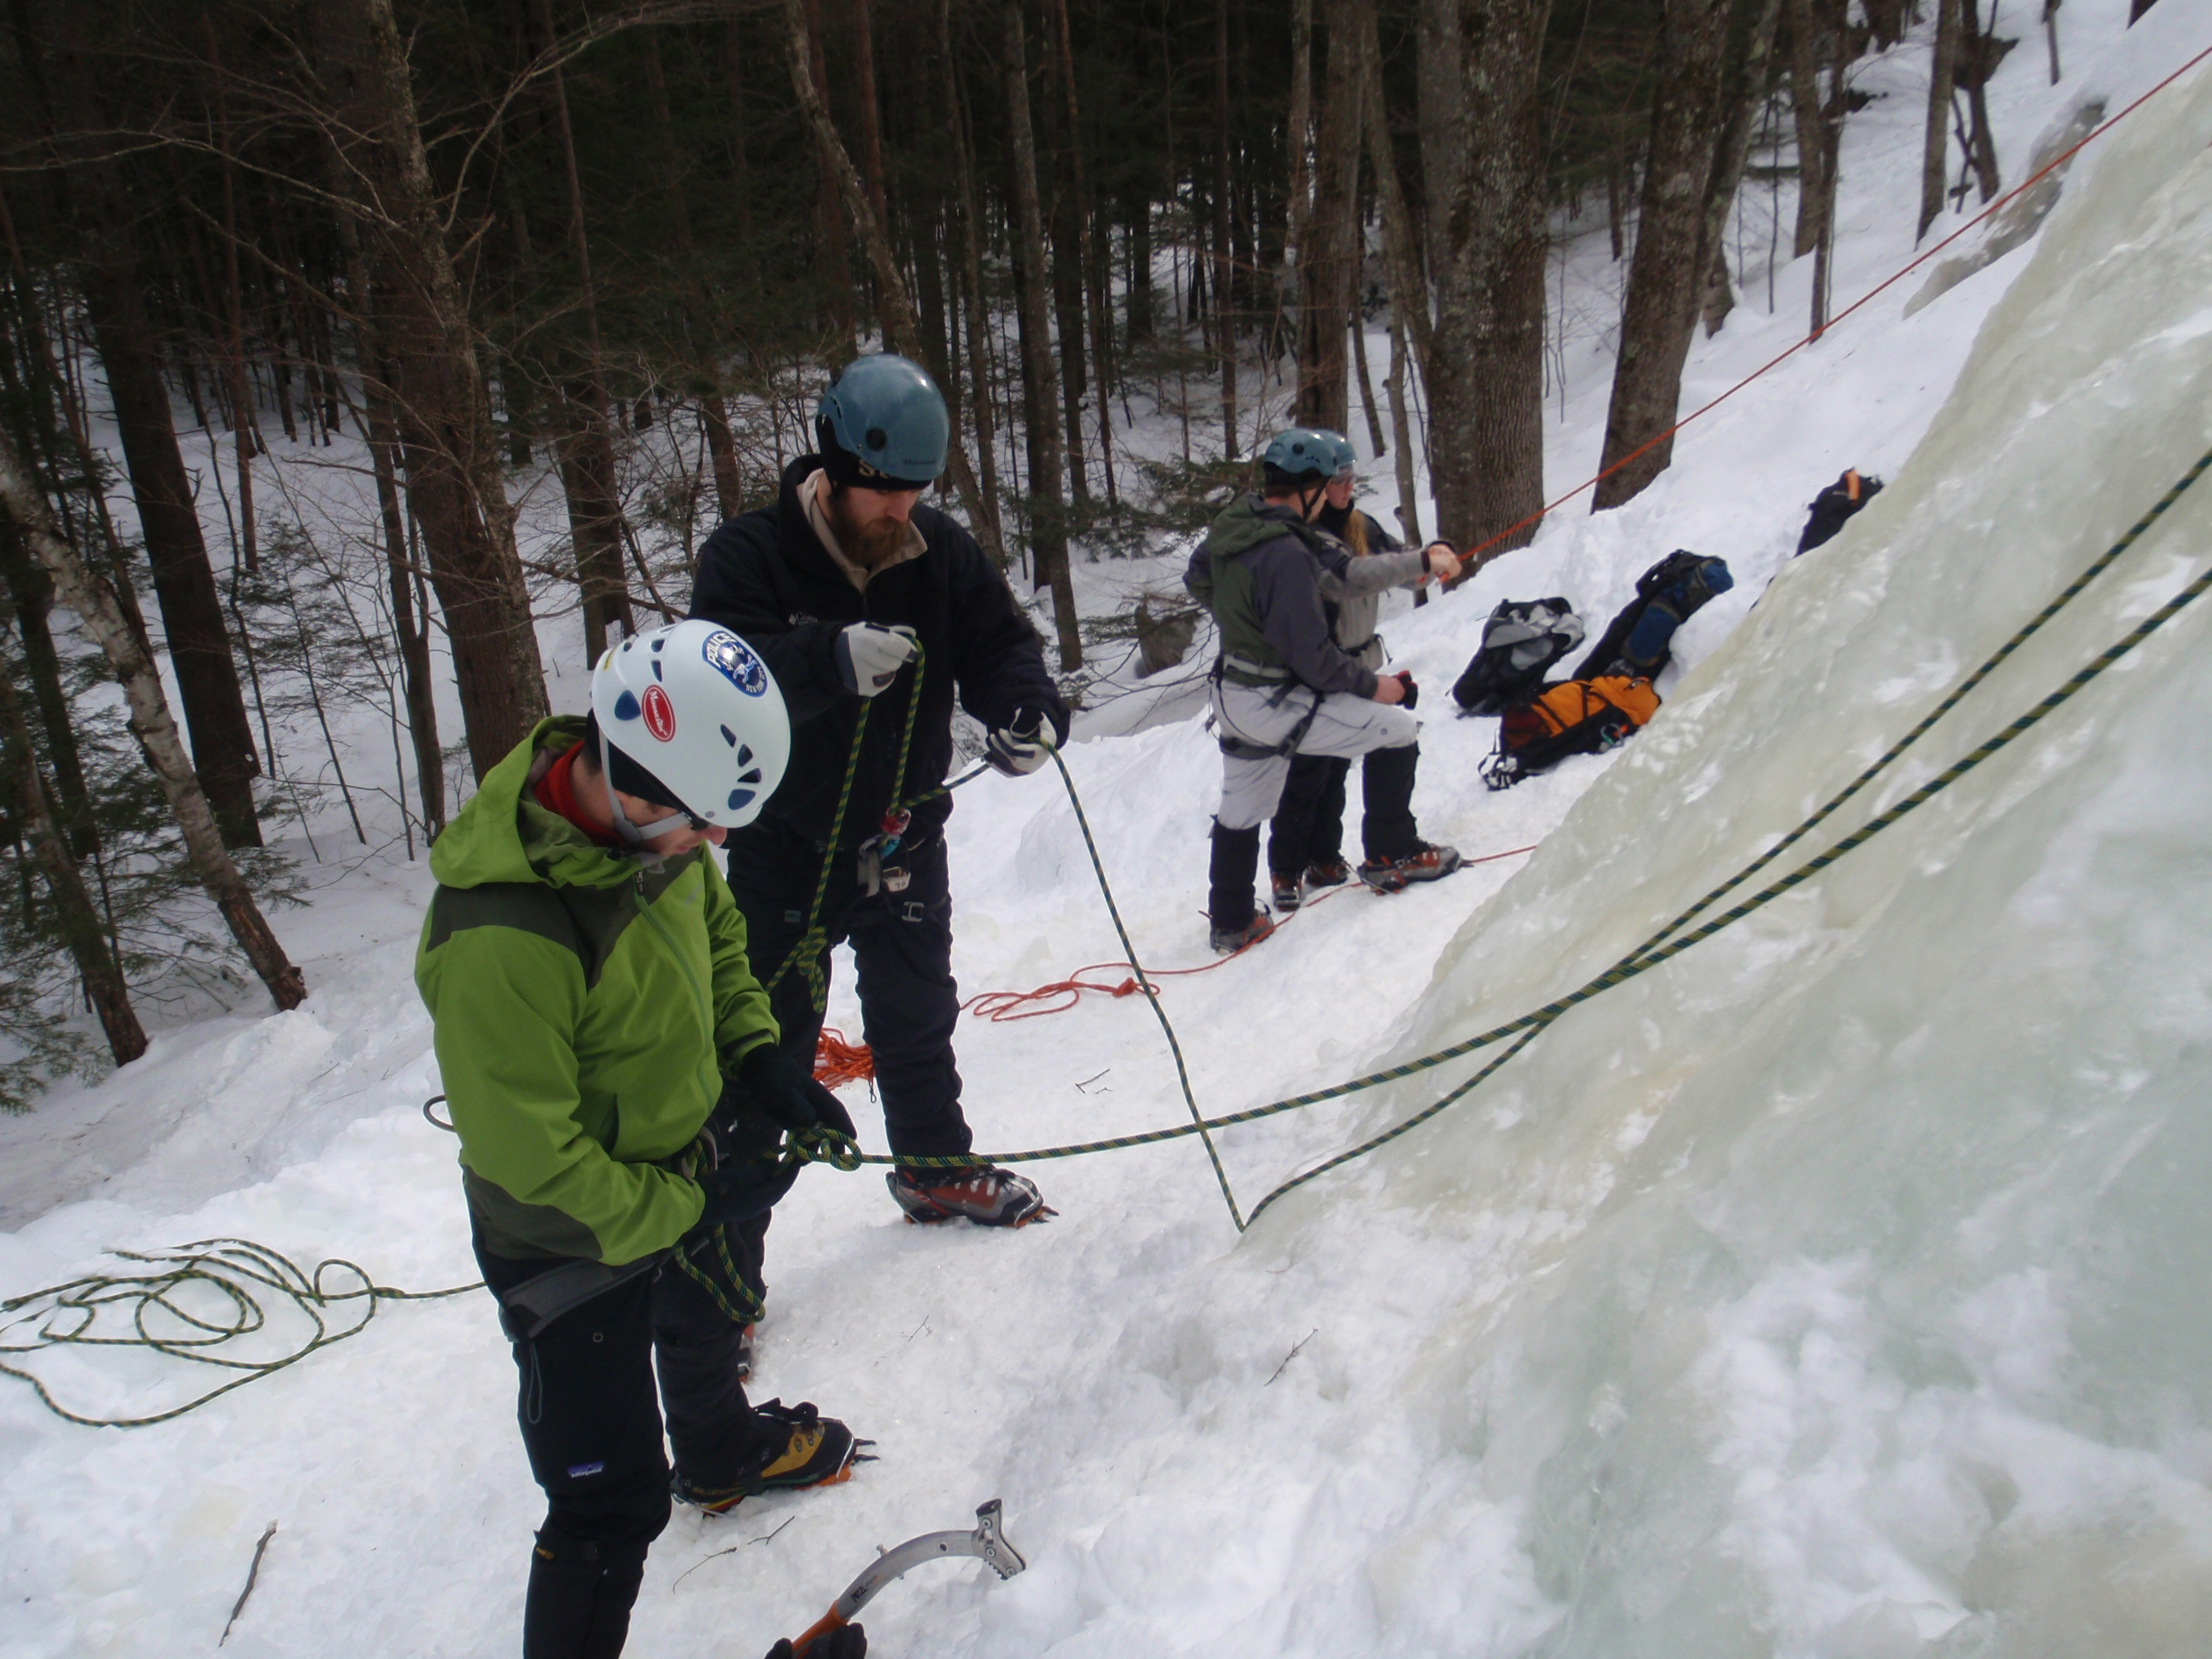 Shane and Michael review their belaying skills...